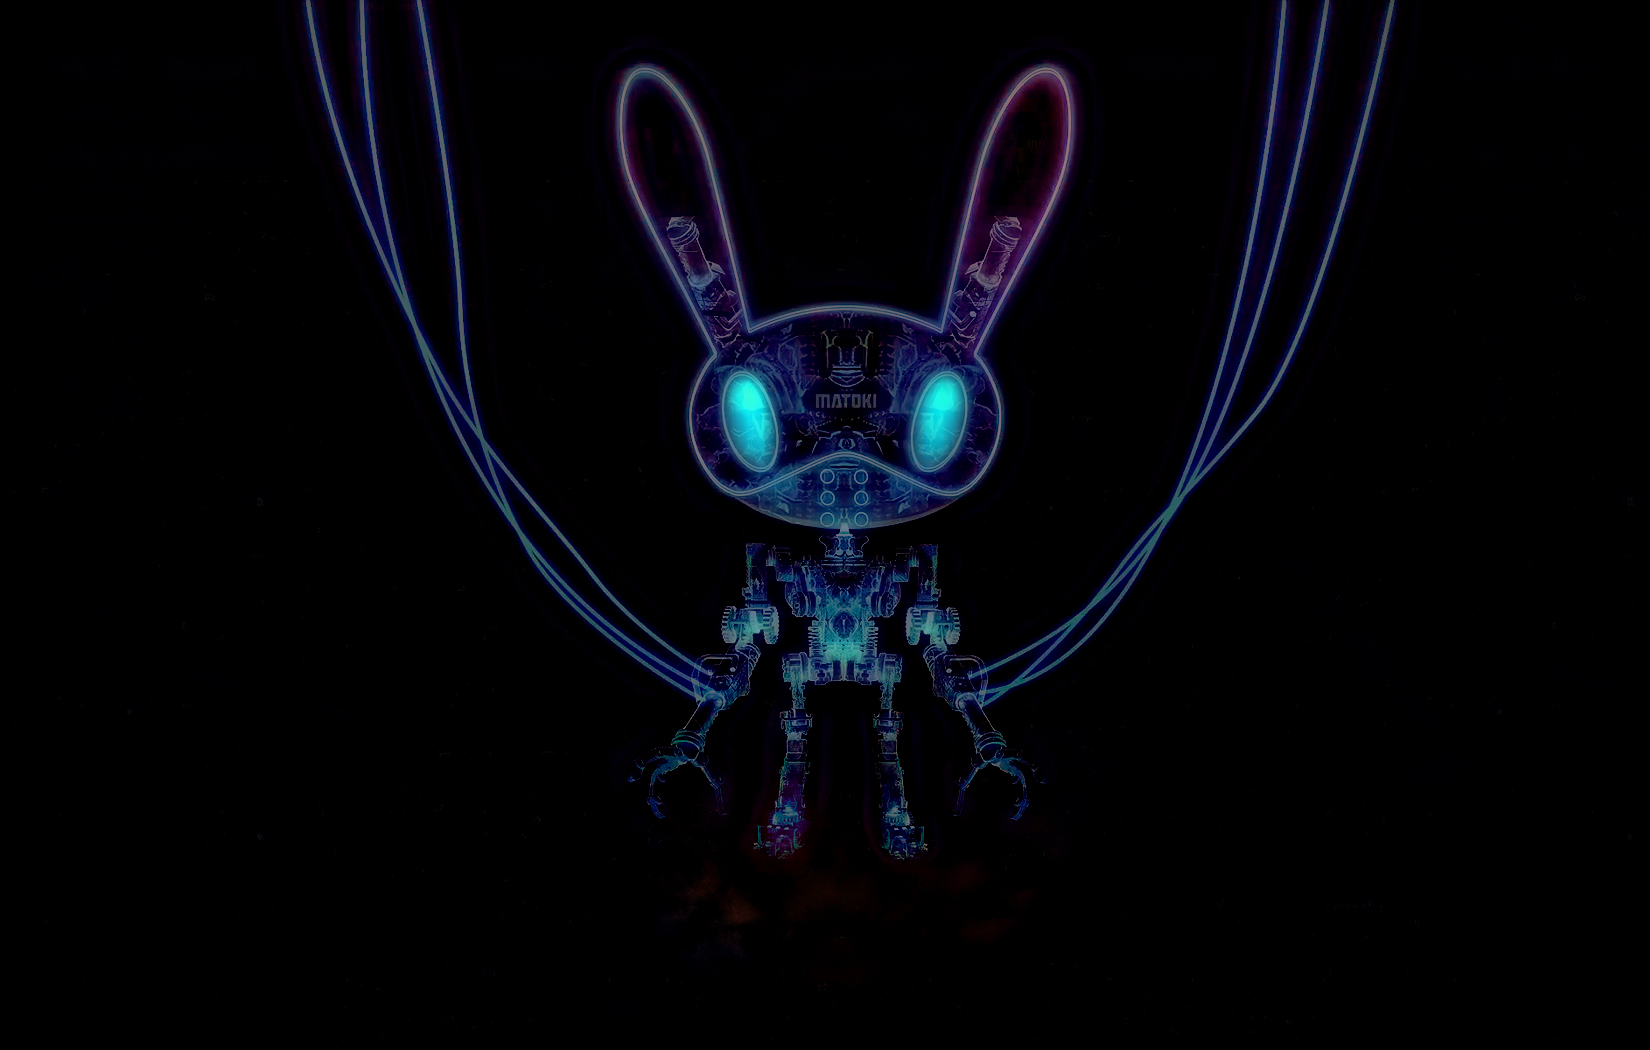 bap matoki wallpaper - photo #7